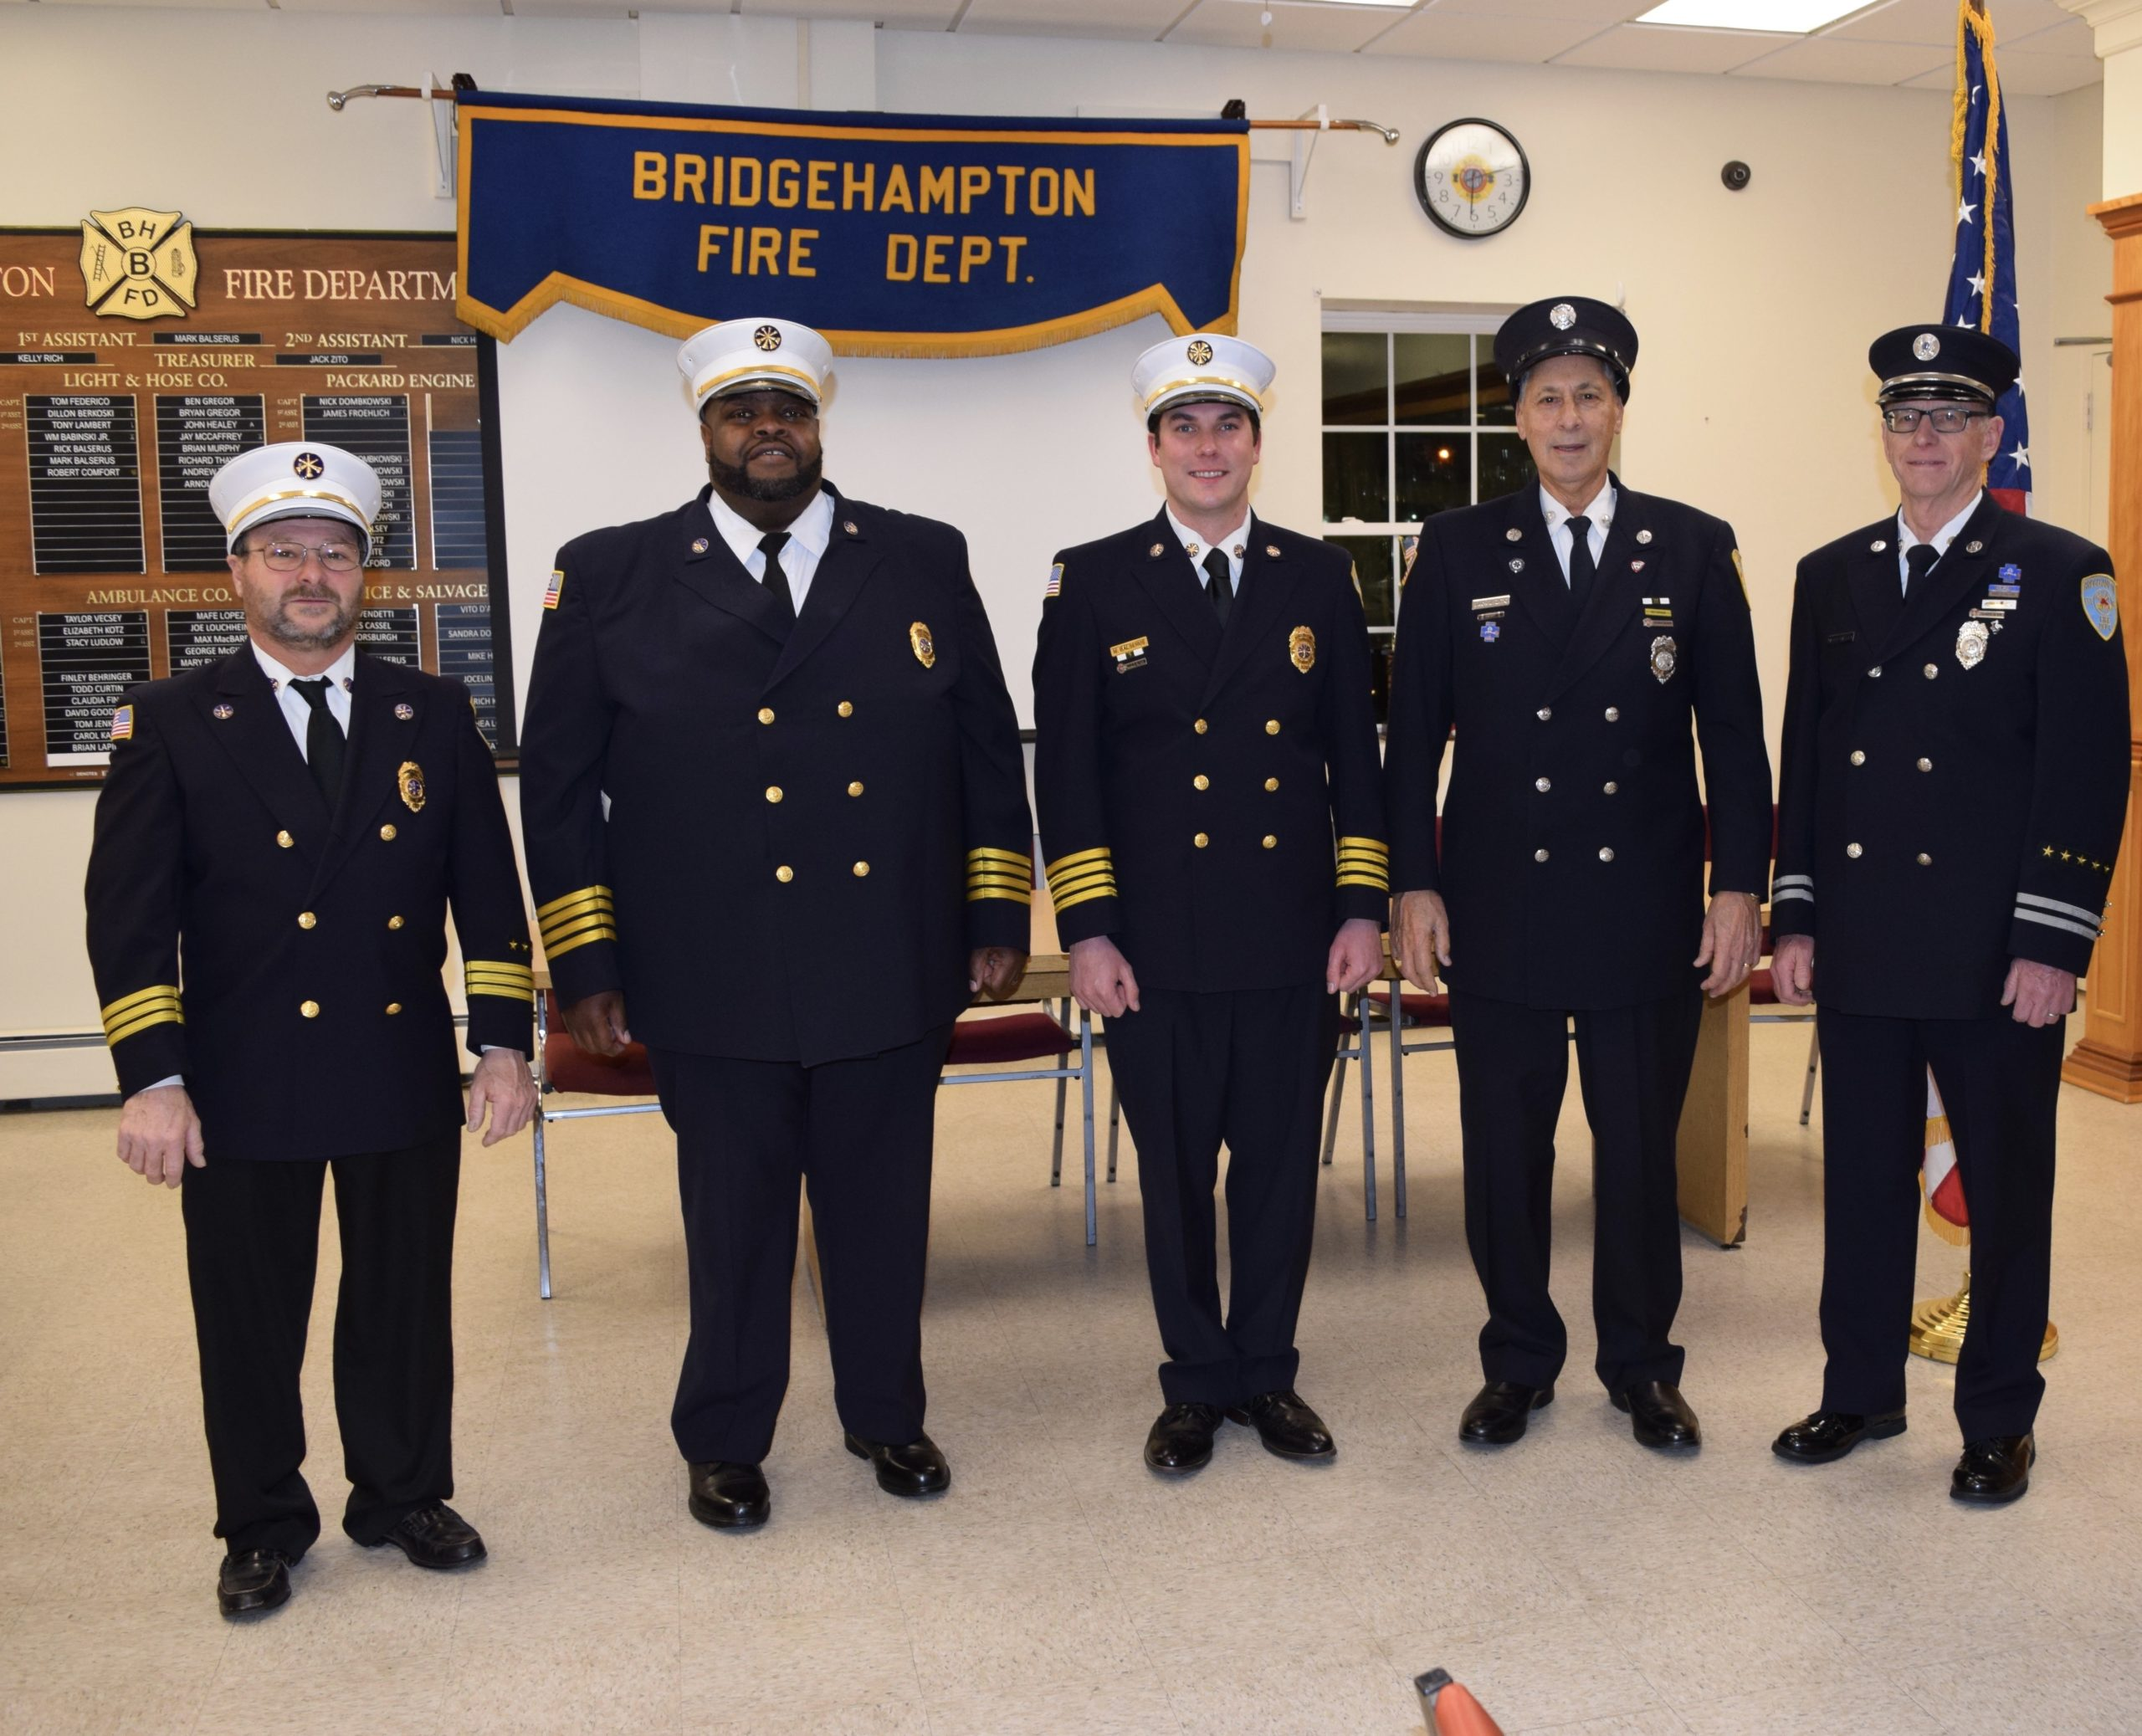 The 2020 officers for the Bridgehampton Fire Department were sworn in on January 8. From left, 2nd Assistant Chief Tom Federico, 1st Assistant Chief Nick Hemby, Chief Mark Balserus, treasurer Jack Zito, and deputy treasurer Harry Halsey. Richard Kelly, not in photo, was sworn in as secretary.